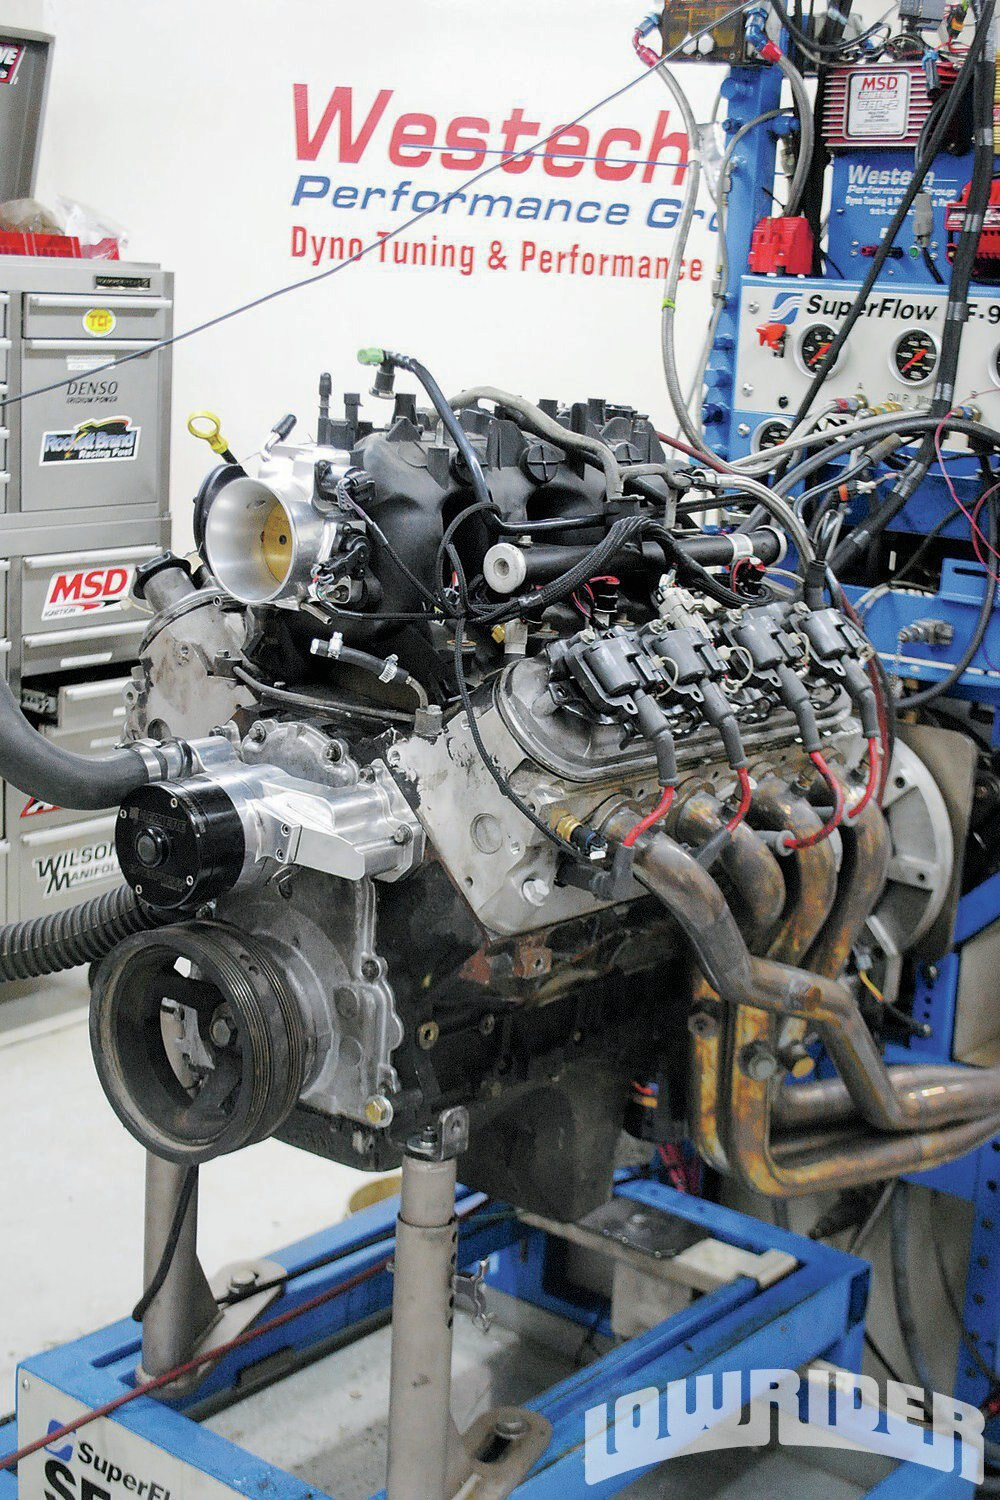 <strong>2</strong>. Like the 4.8L, the 5.3L had logged over 150,000 miles, but was still running strong. Equipped as the 4.8L, the larger 5.3L produced 344 hp at 5,100 rpm and 379 lb-ft at 4,300 rpm. The 5.3L offered only slightly more peak power but a significant increase in torque. Using the same heads, cam and intake, the 5.3L produced peak power and torque at a lower rpm than the smaller 4.8L.